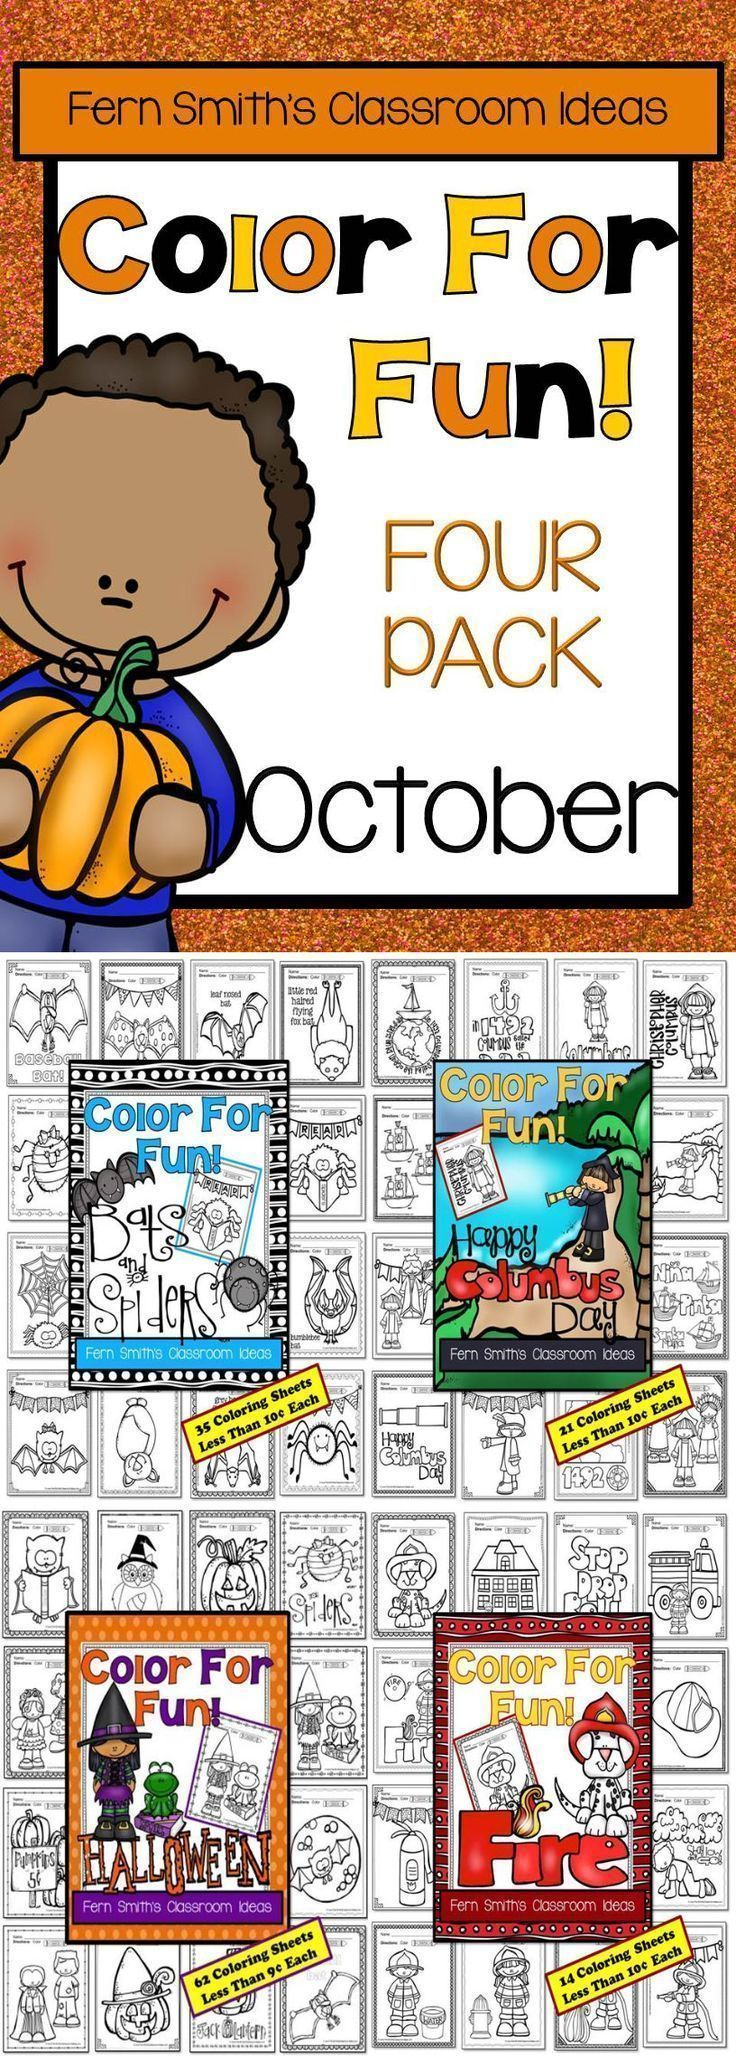 Color For Fun Holiday Four Pack of Printable Coloring Pages {133 coloring pages equals less than 9 cents a page.} ♦ This convenience bundle contains the following FOUR resources: 1. Fire Prevention and Safety 2. Columbus Day 3. Halloween and 4. Spiders and Bats with No Halloween References #TPT #Halloween #ColorForFun #FirePrevention #FireSafety  #ColumbusDay #Spiders #Bats $Paid